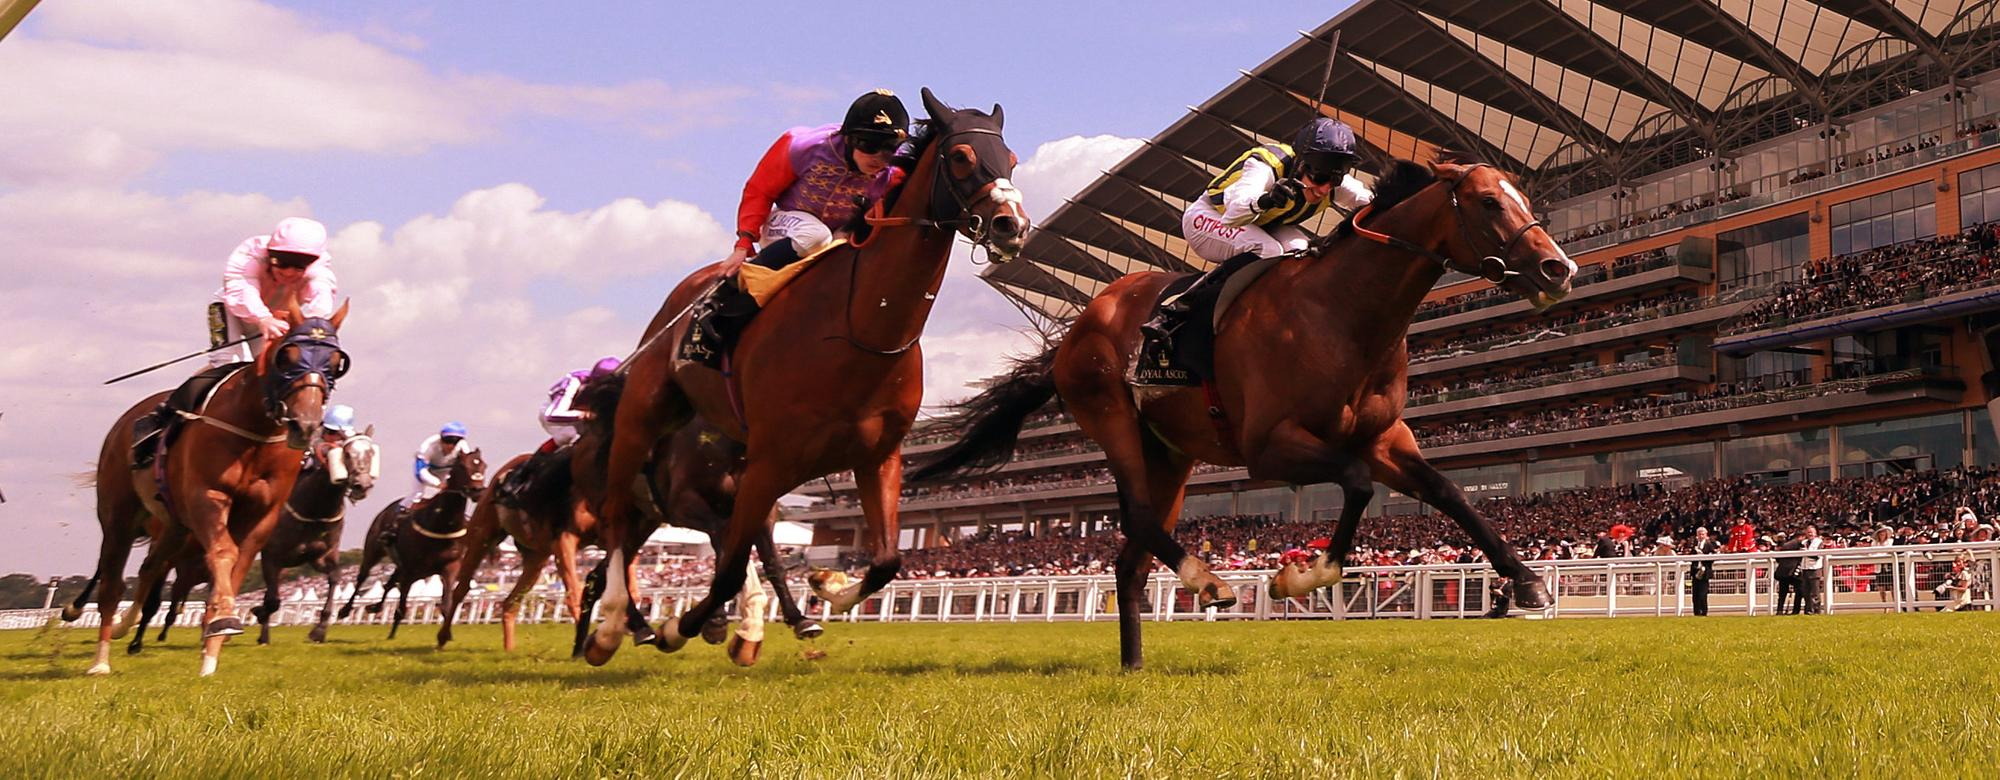 Horses Racing on Ascot Race Course